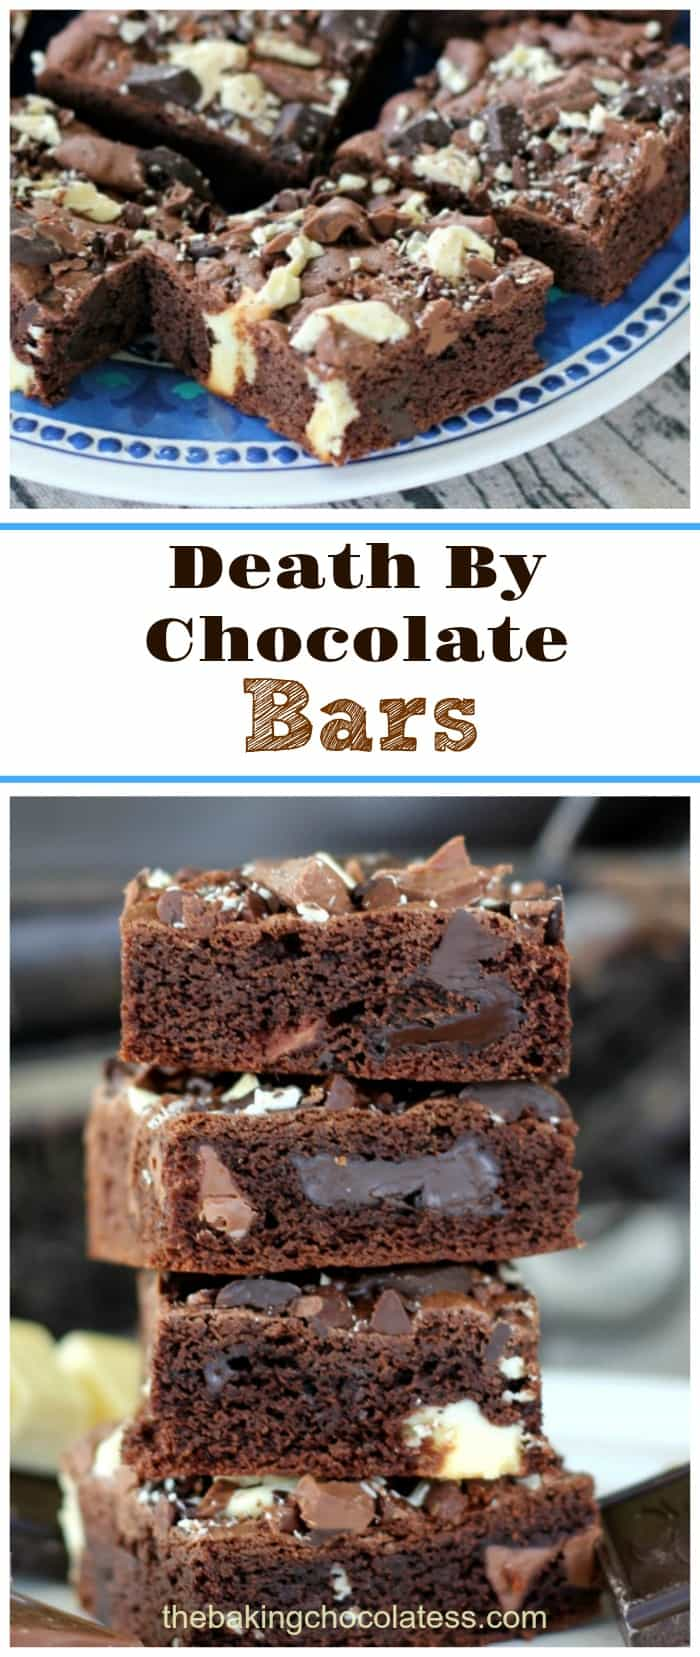 Death By Chocolate Bars